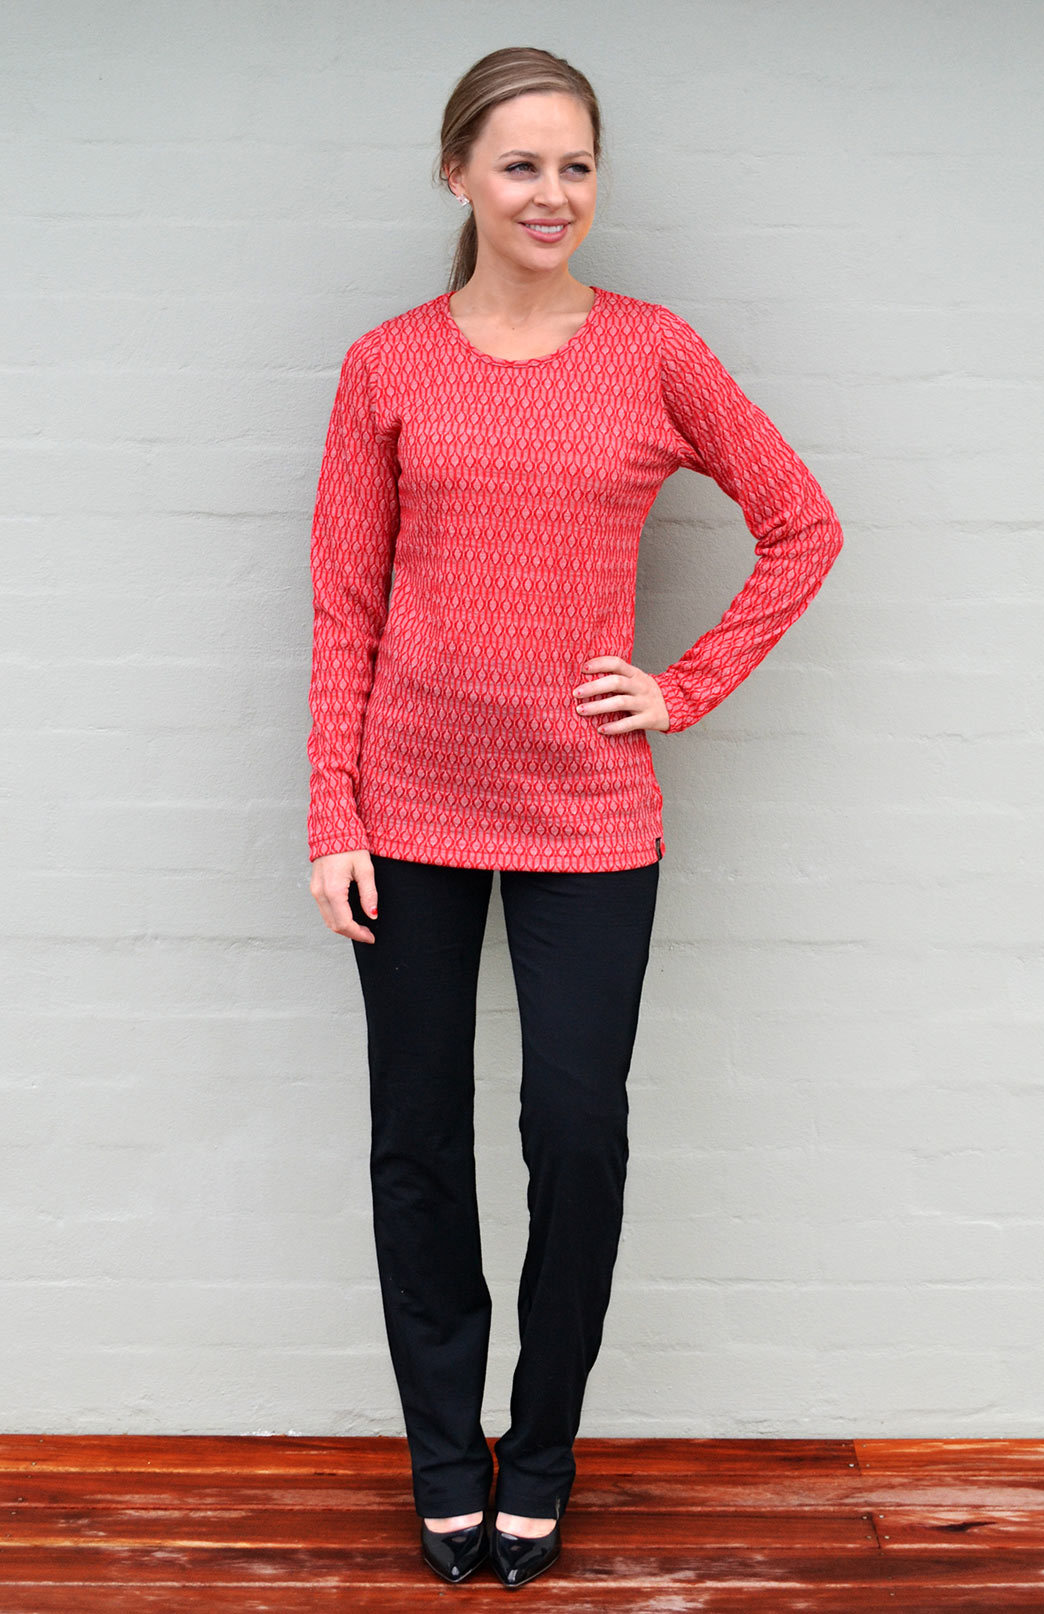 Round Neck Top - Patterned - Women's Bright Red Keyhole Patterned Long Sleeve Merino Wool Thermal Fashion Top - Smitten Merino Tasmania Australia